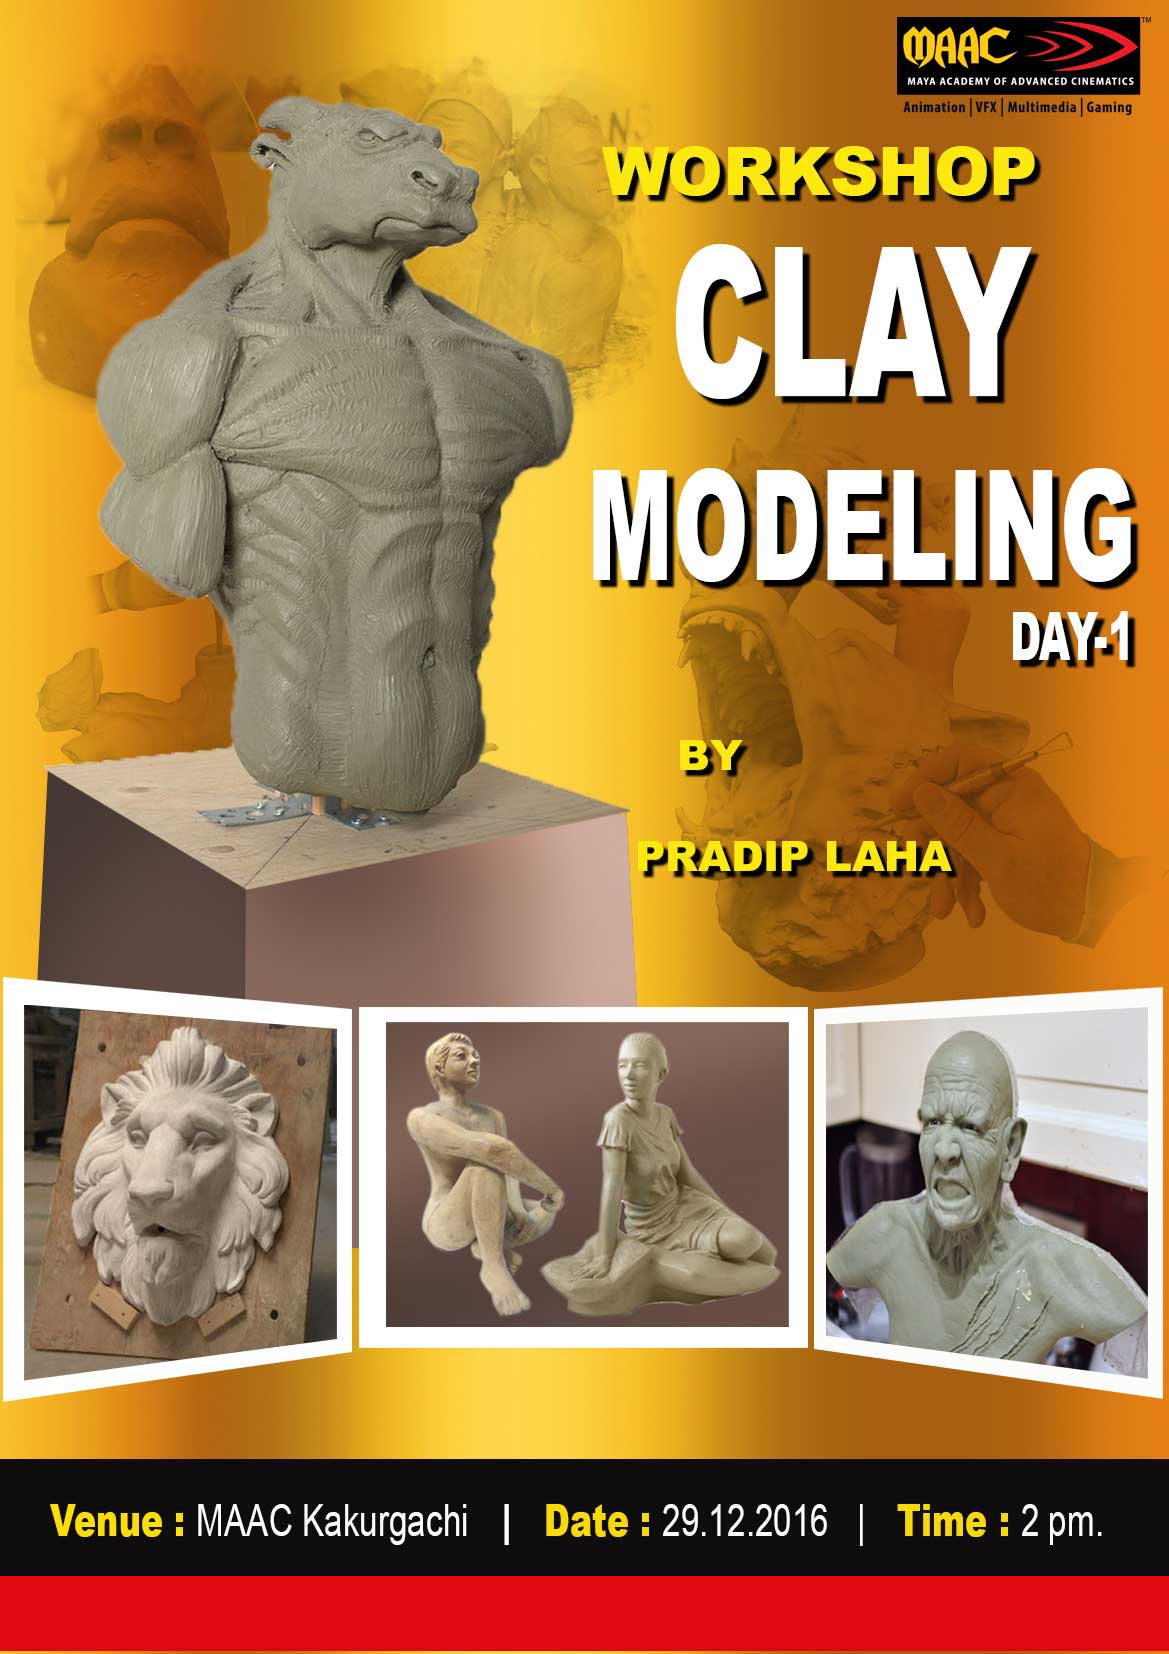 Weekly Master Class on Clay Modelling - Pradip Laha